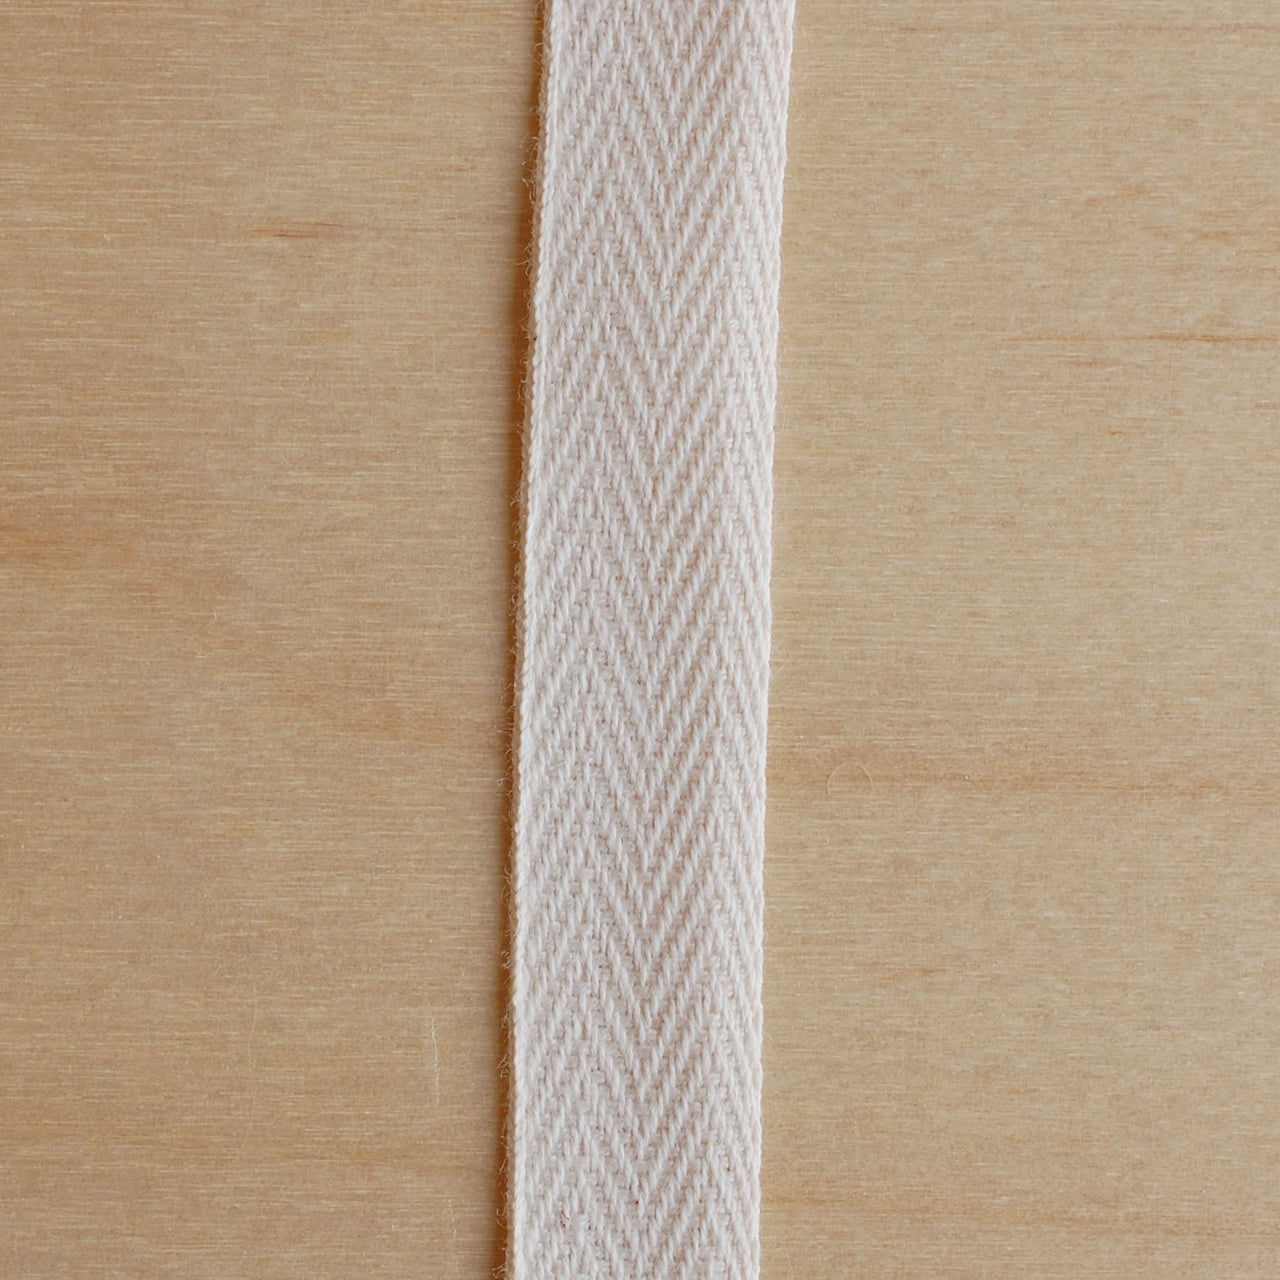 1/2M 0.5in Cotton Twill Tape Natural (12mm)